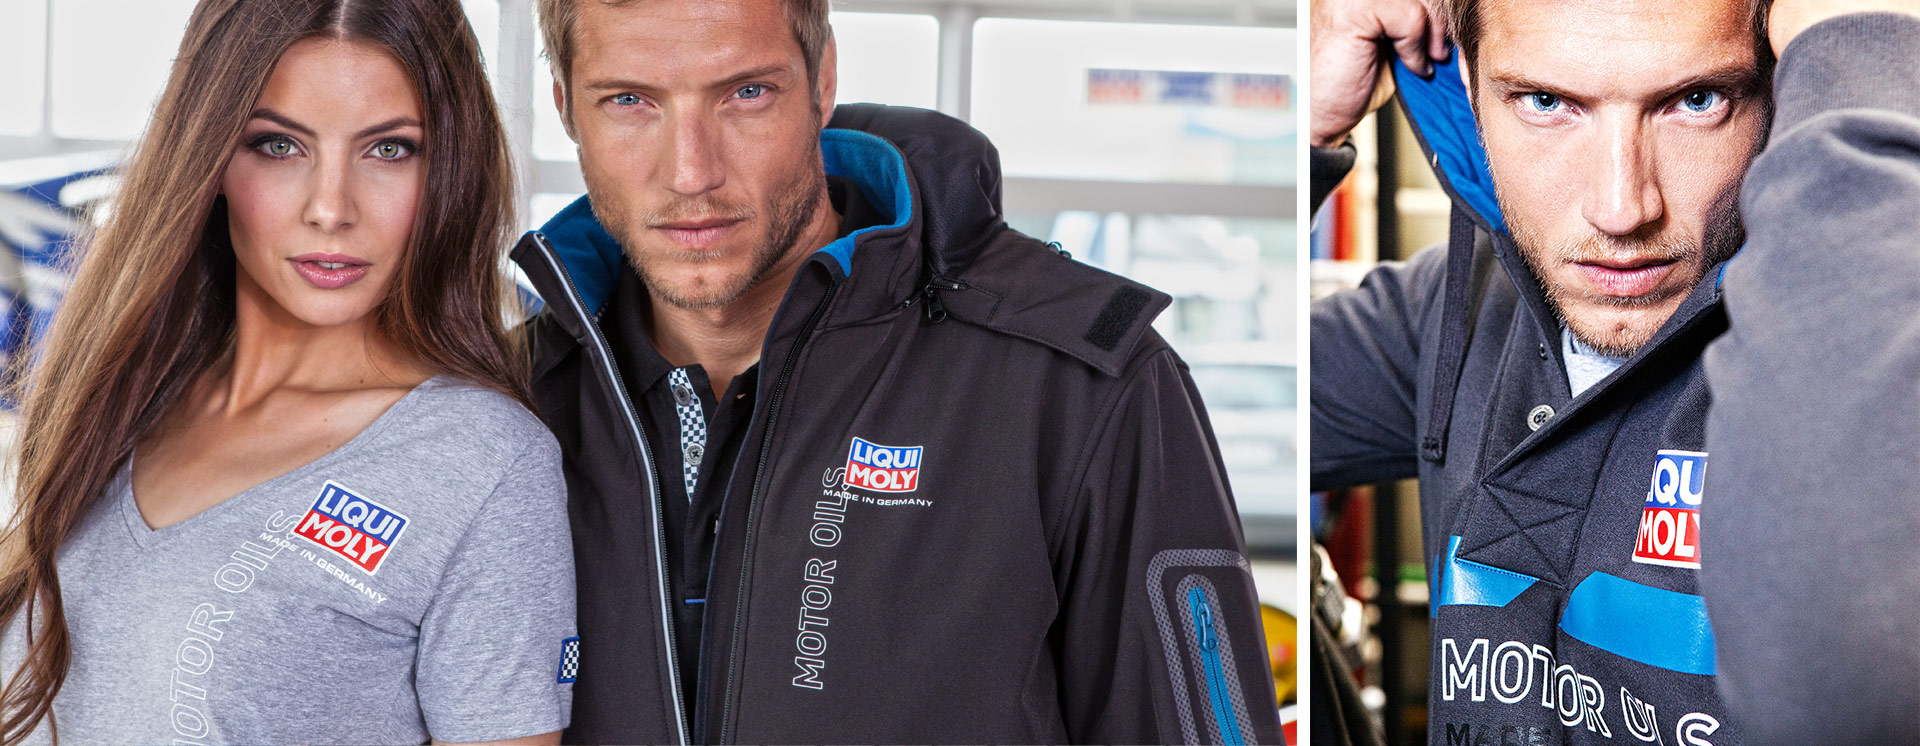 Bequeme Casual Wear mit Liqui Moly Branding